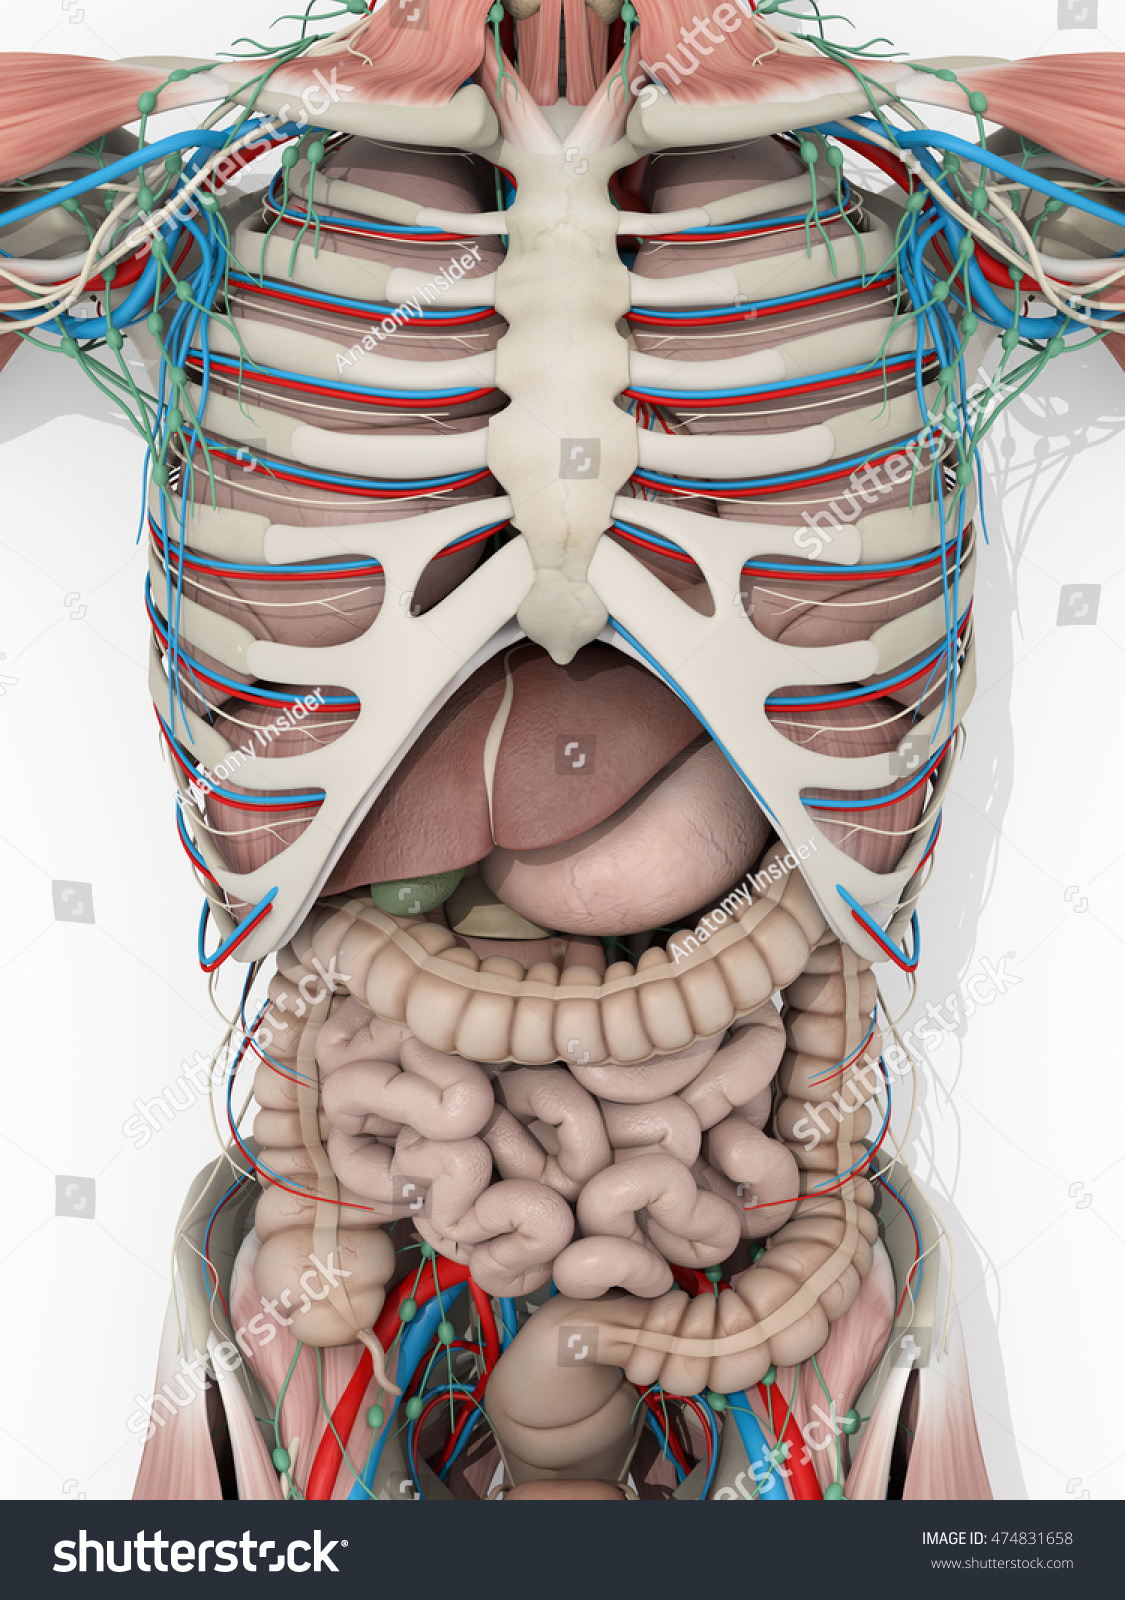 Human anatomy muscular system digestive system stock illustration human anatomy muscular system digestive system medical illustration on white background 3d illustration ccuart Gallery